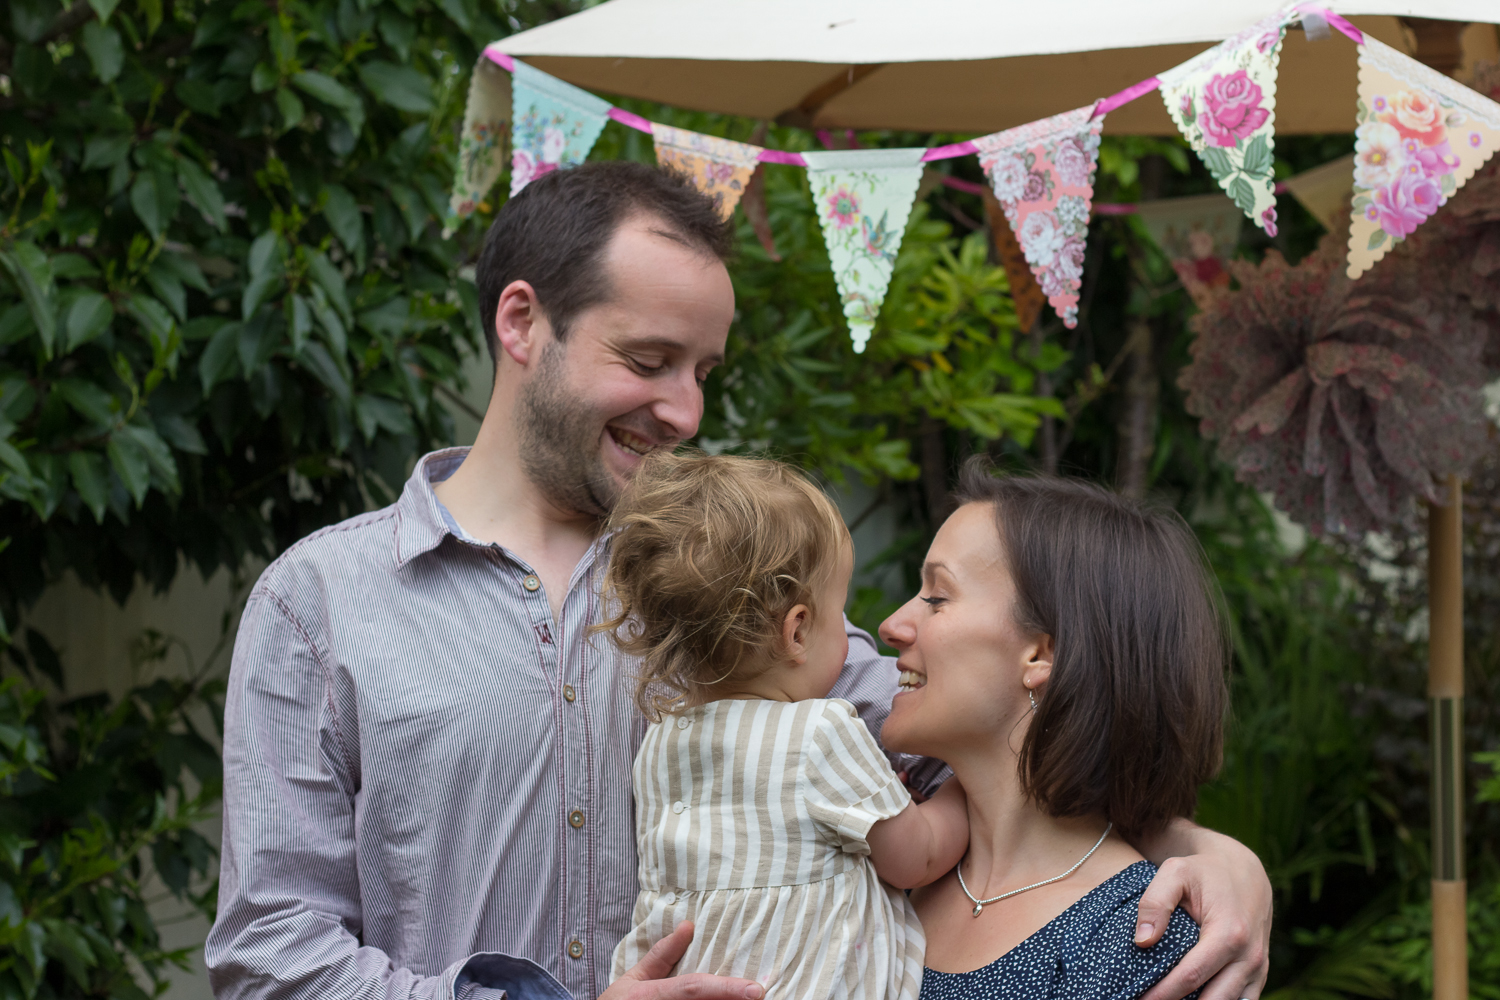 A mum, dad and their birthday girl pose for a family photograph in their garden in Tunbridge Wells